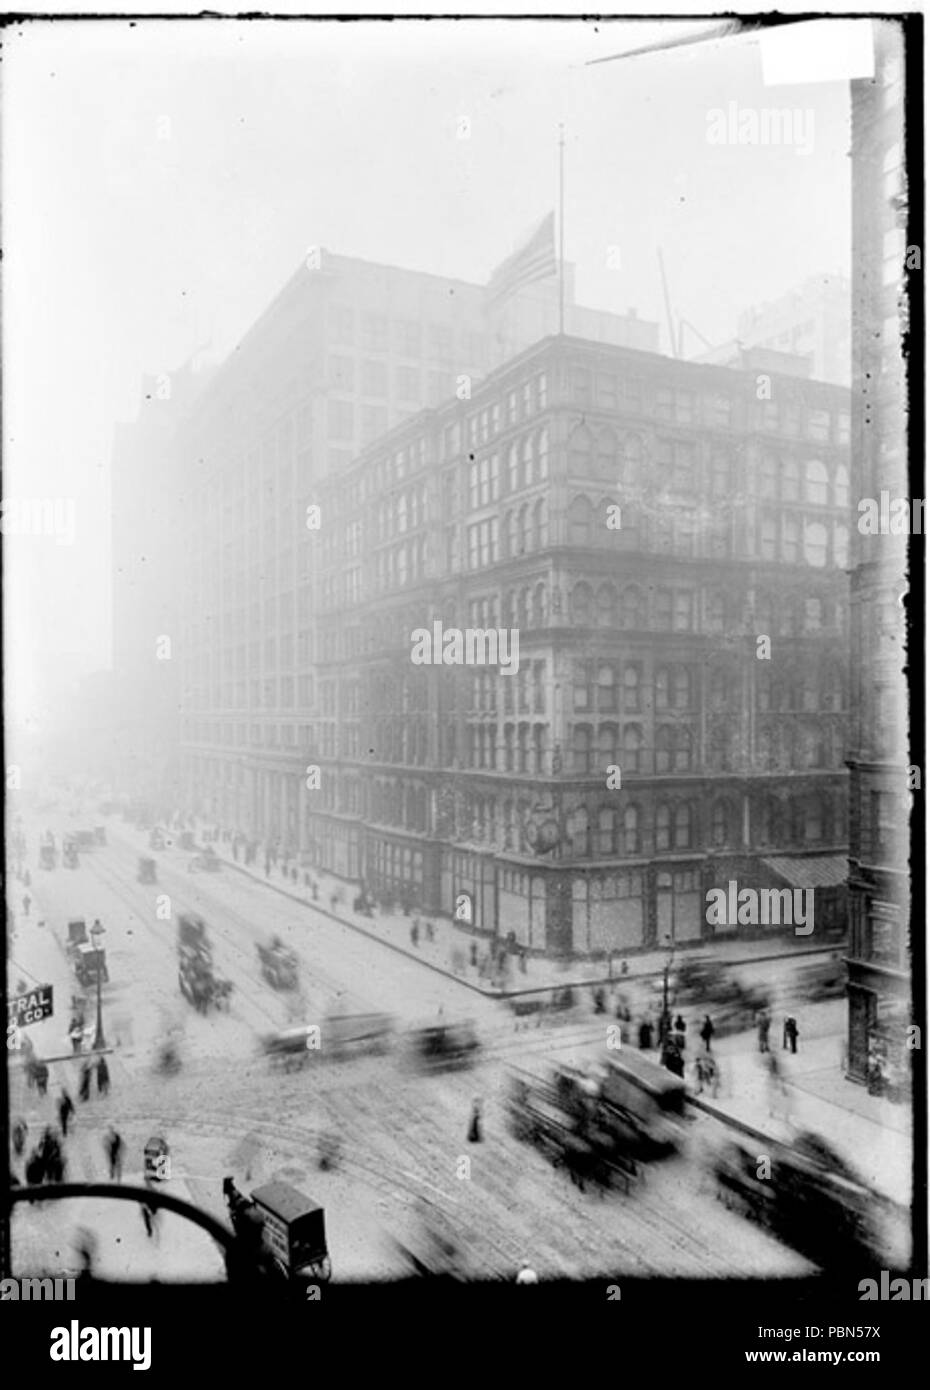 . English: Exterior view of the Marshall Field & Company building seen from across the street intersection with carts and wagons moving along the street in front. The store was located at located at 111 North State Street between East Randolph and East Washington Streets in the Loop community area of Chicago. circa 1905 1001 Marshall Field Building in 1905 - Stock Image